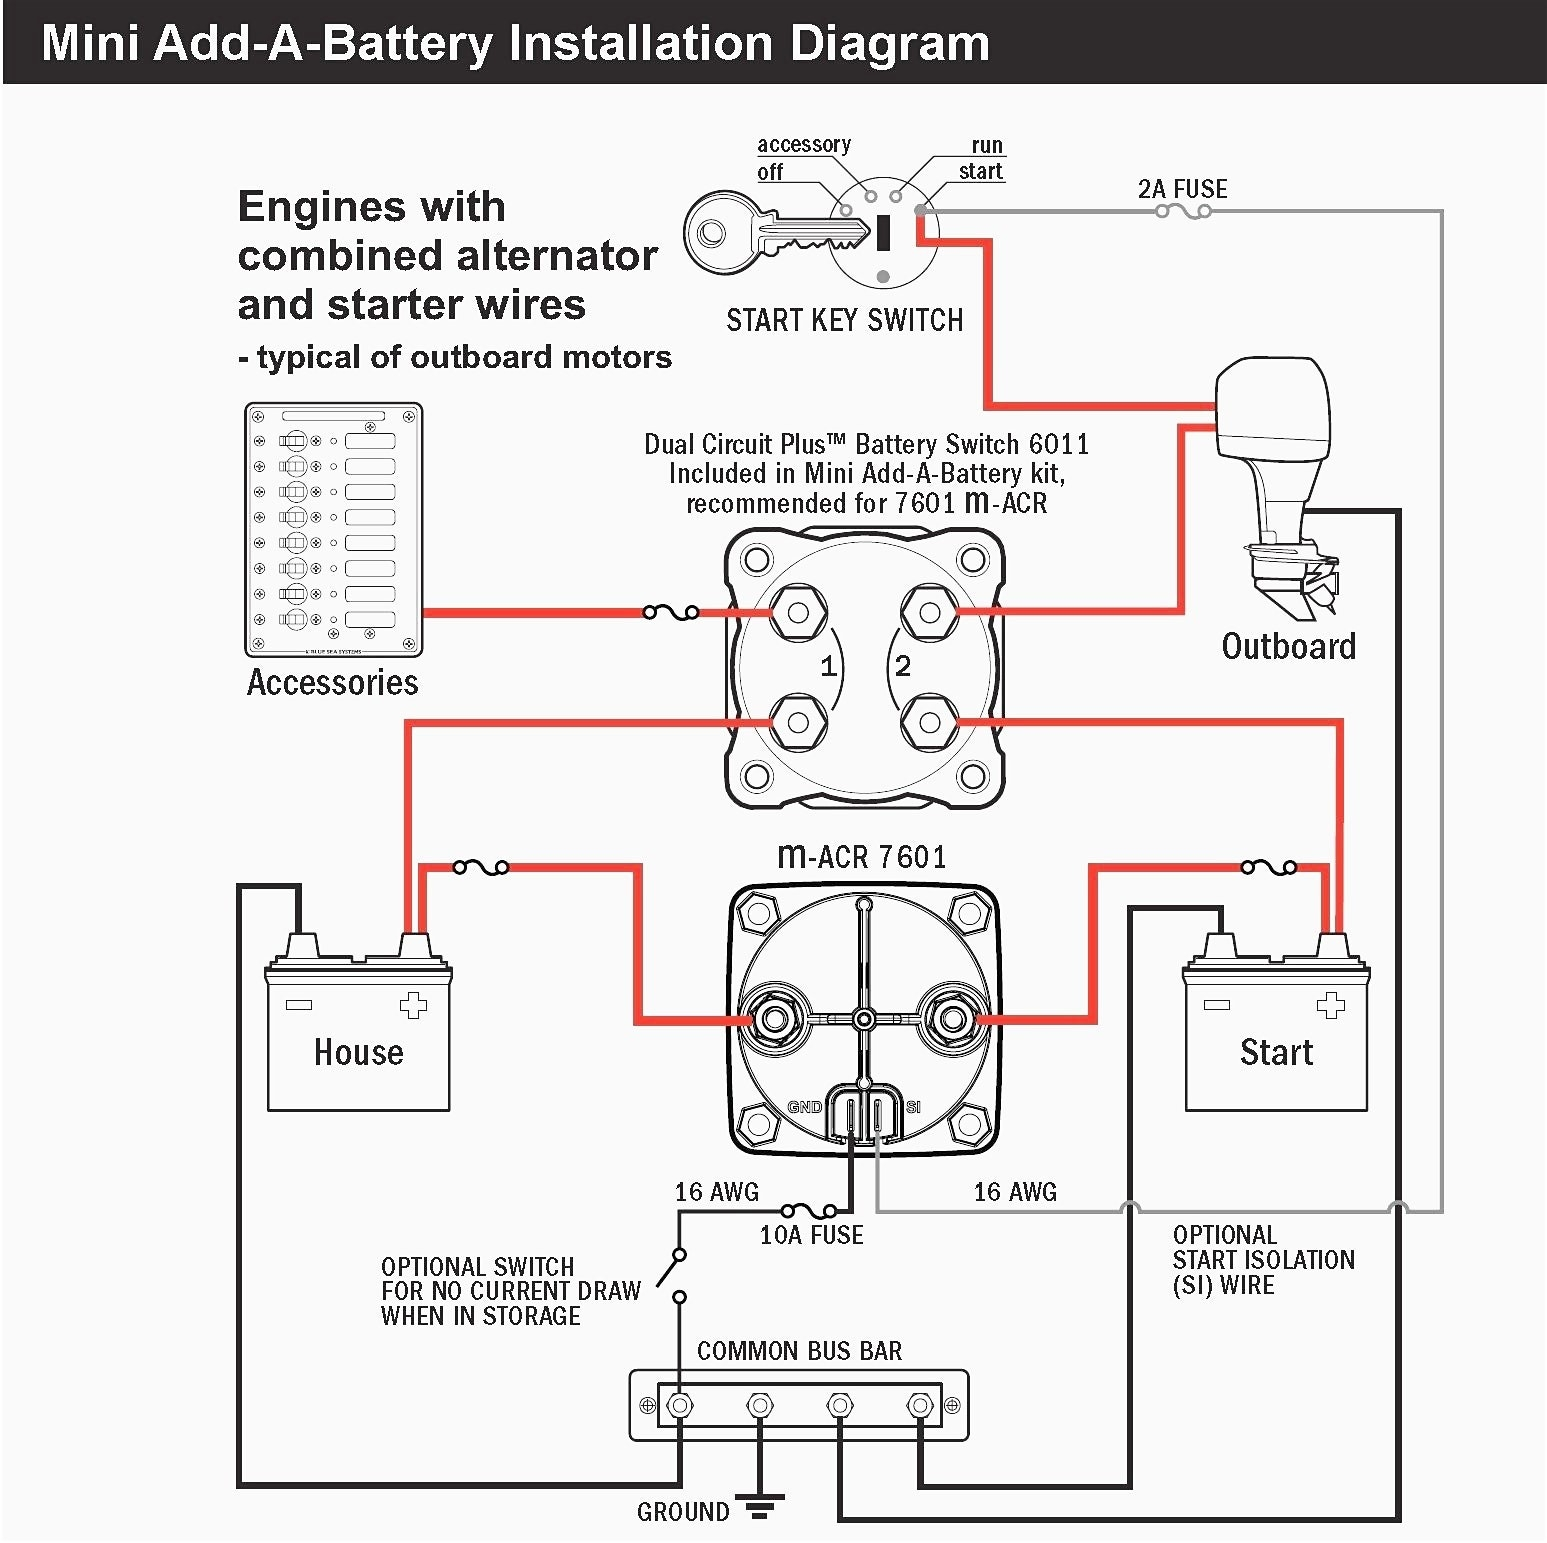 rv battery disconnect switch wiring diagram Download-Wiring Diagram for Rv Steps Fresh Wiring Diagram for Rv Batteries Fresh Battery Disconnect Switch 14-k